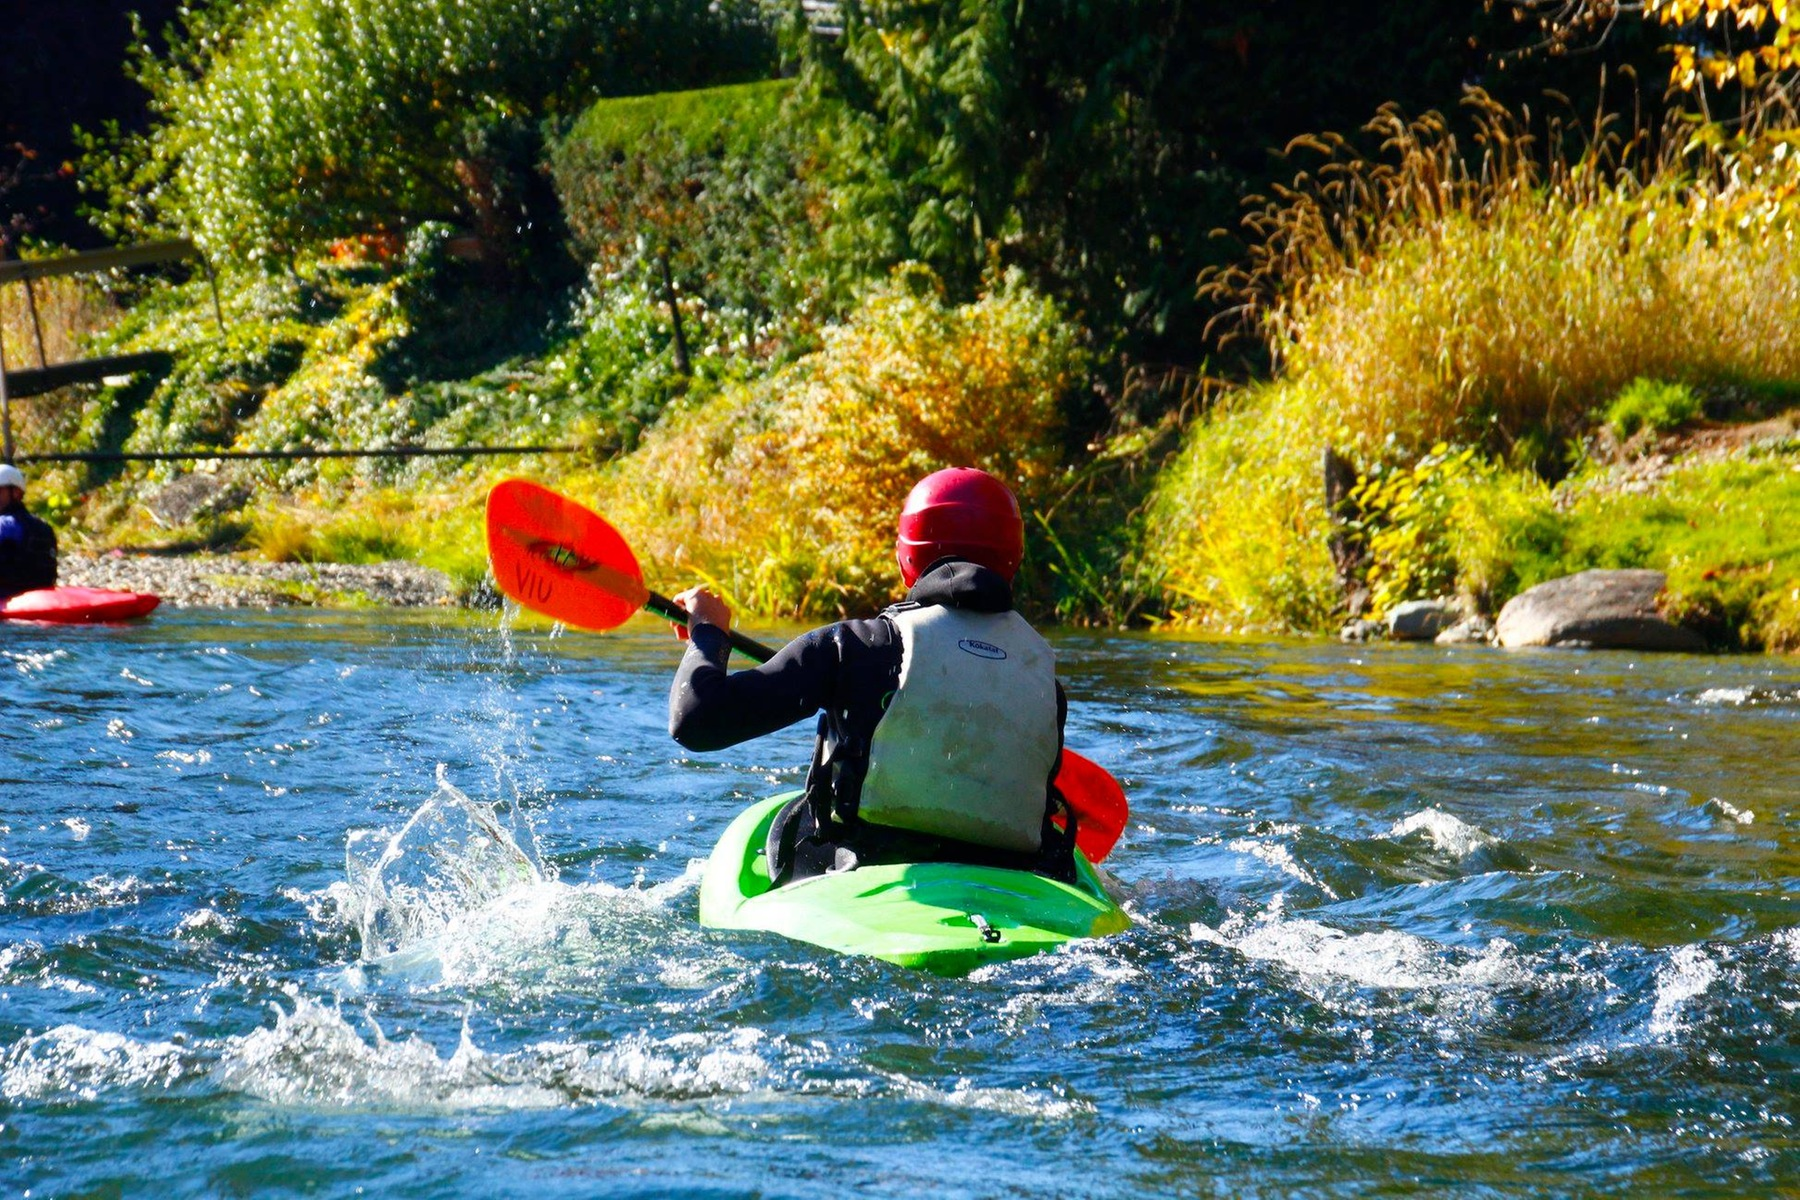 Learn to White Water Kayak VIU Outdoor Recreation